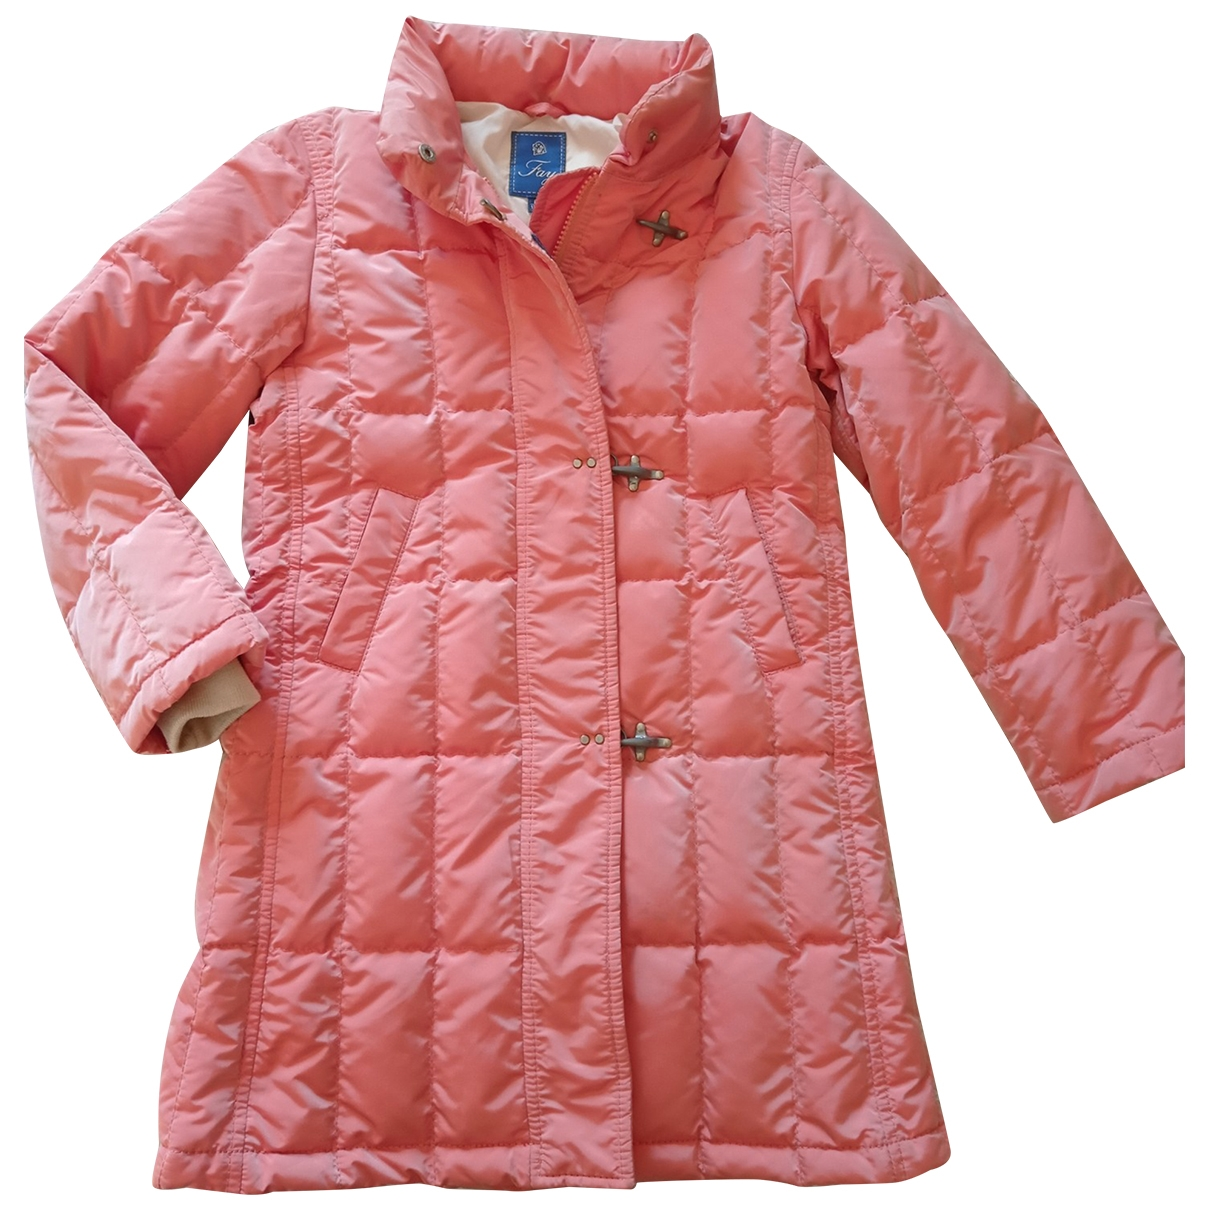 Fay \N Pink jacket & coat for Kids 8 years - up to 128cm FR